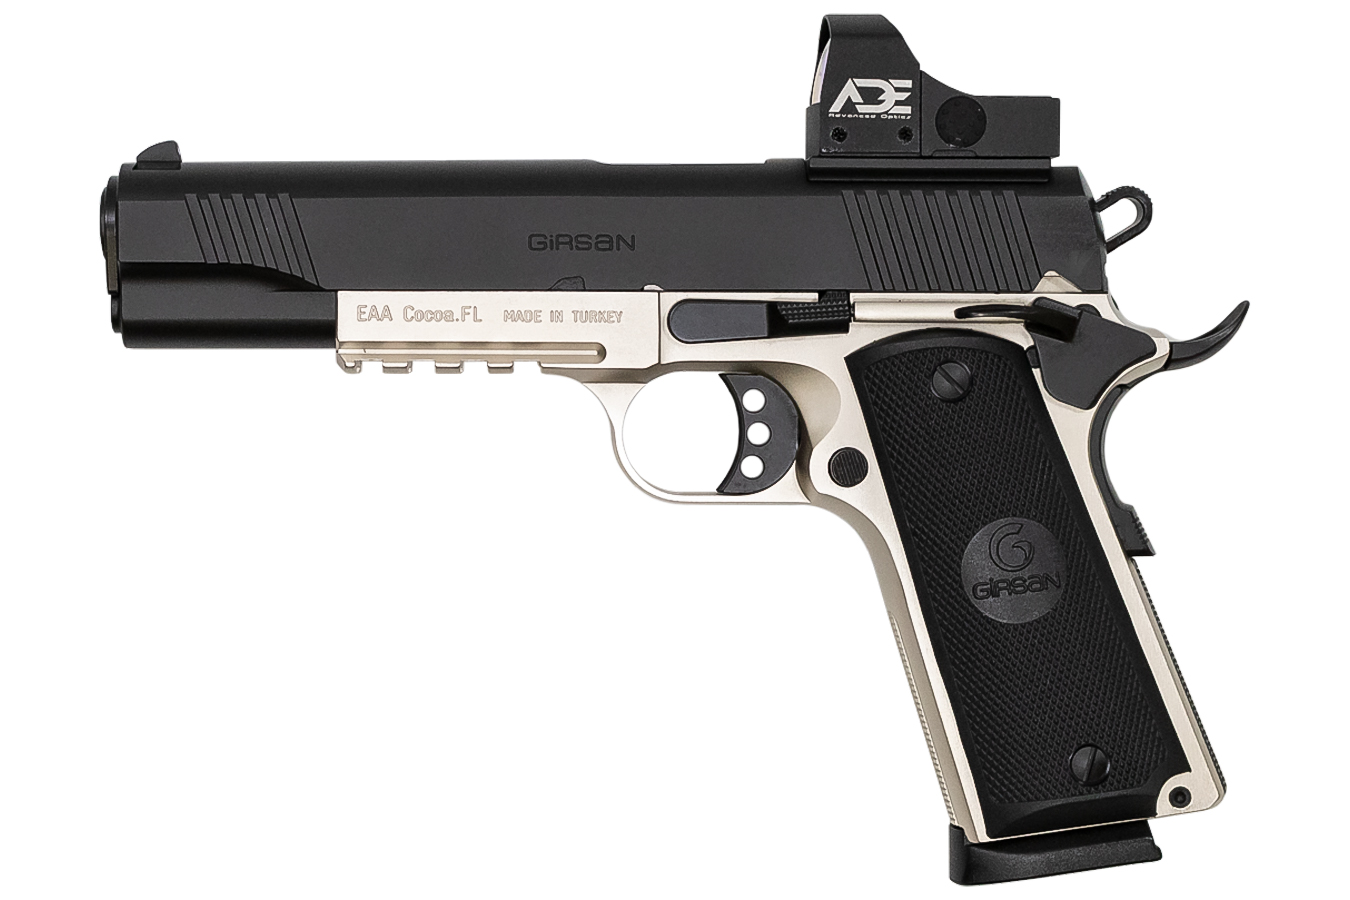 GIRSAN MC1911S GOV. TWO-TONE OPTIC 45ACP